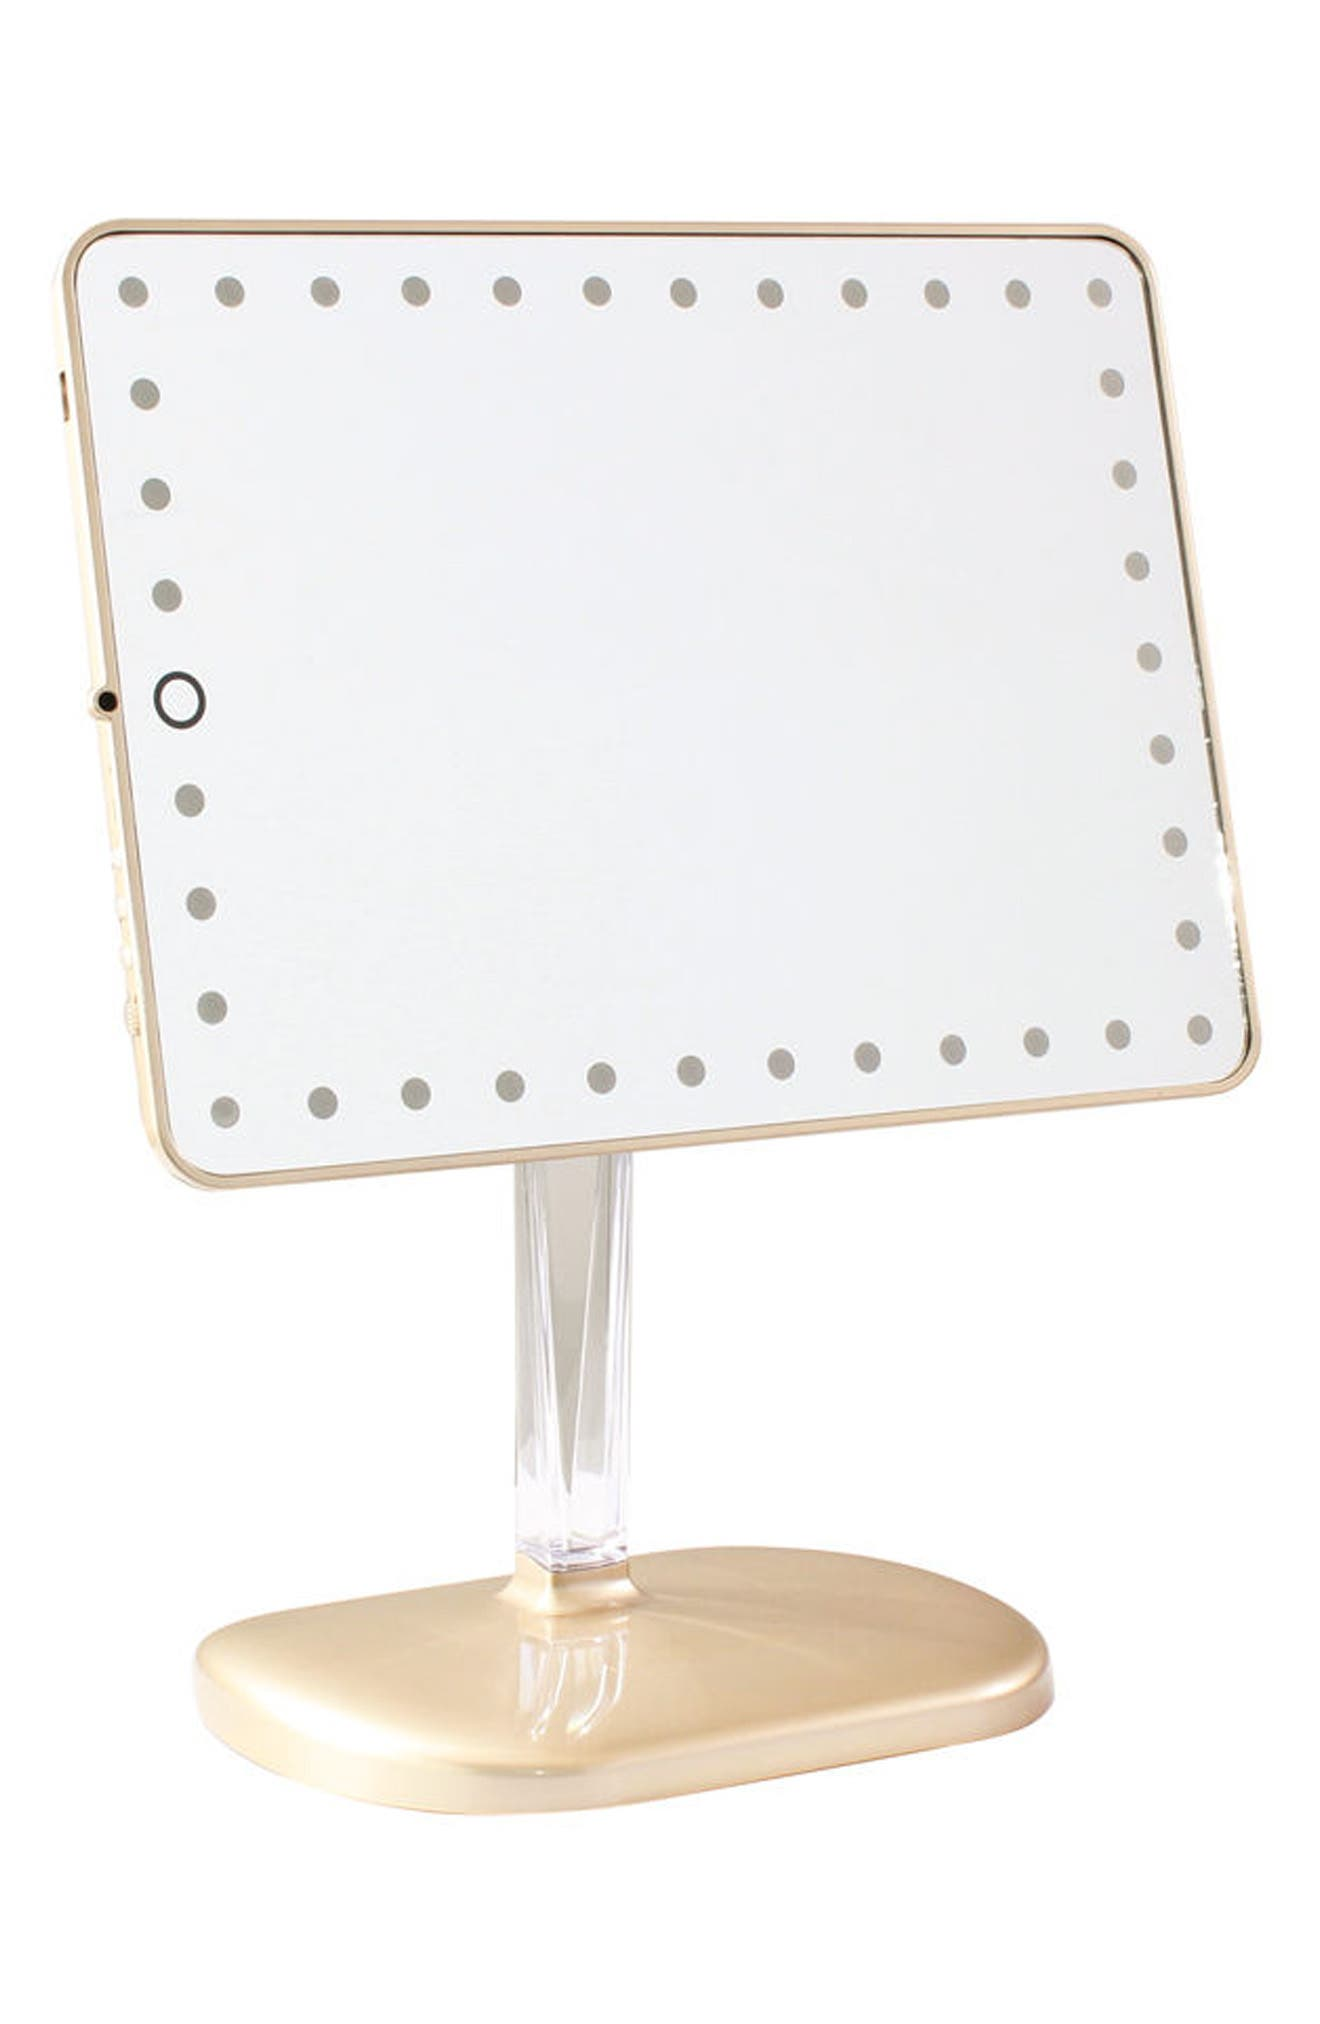 Bling Touch Pro LED Makeup Mirror with Bluetooth<sup>®</sup> Audio & Speakerphone,                             Alternate thumbnail 2, color,                             Glossy Champagne